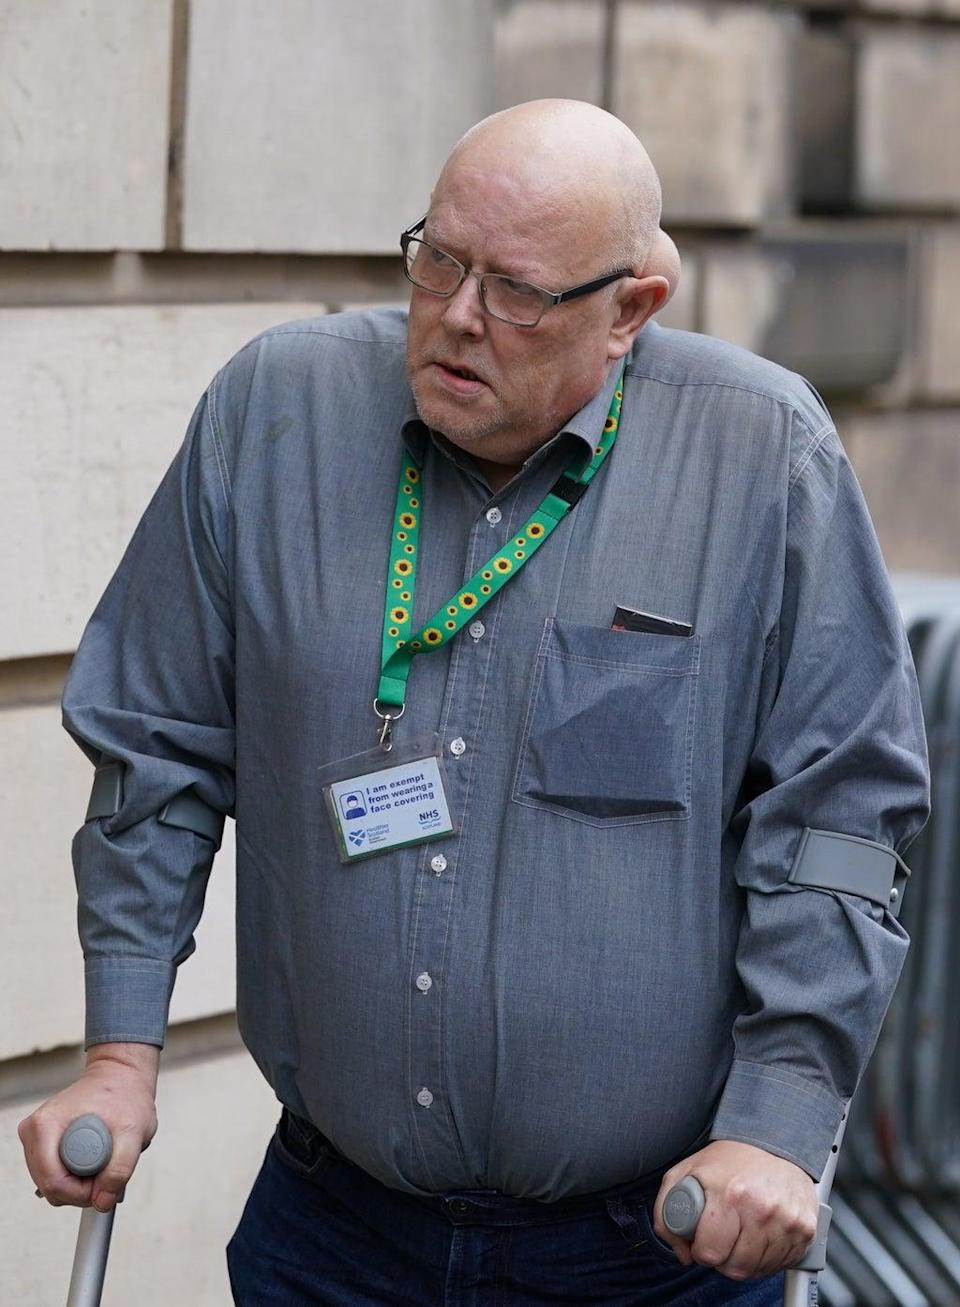 Gordon Yuill, the father of John Yuill, arriving at the High Court in Edinburgh (Andrew Milligan/PA) (PA Wire)